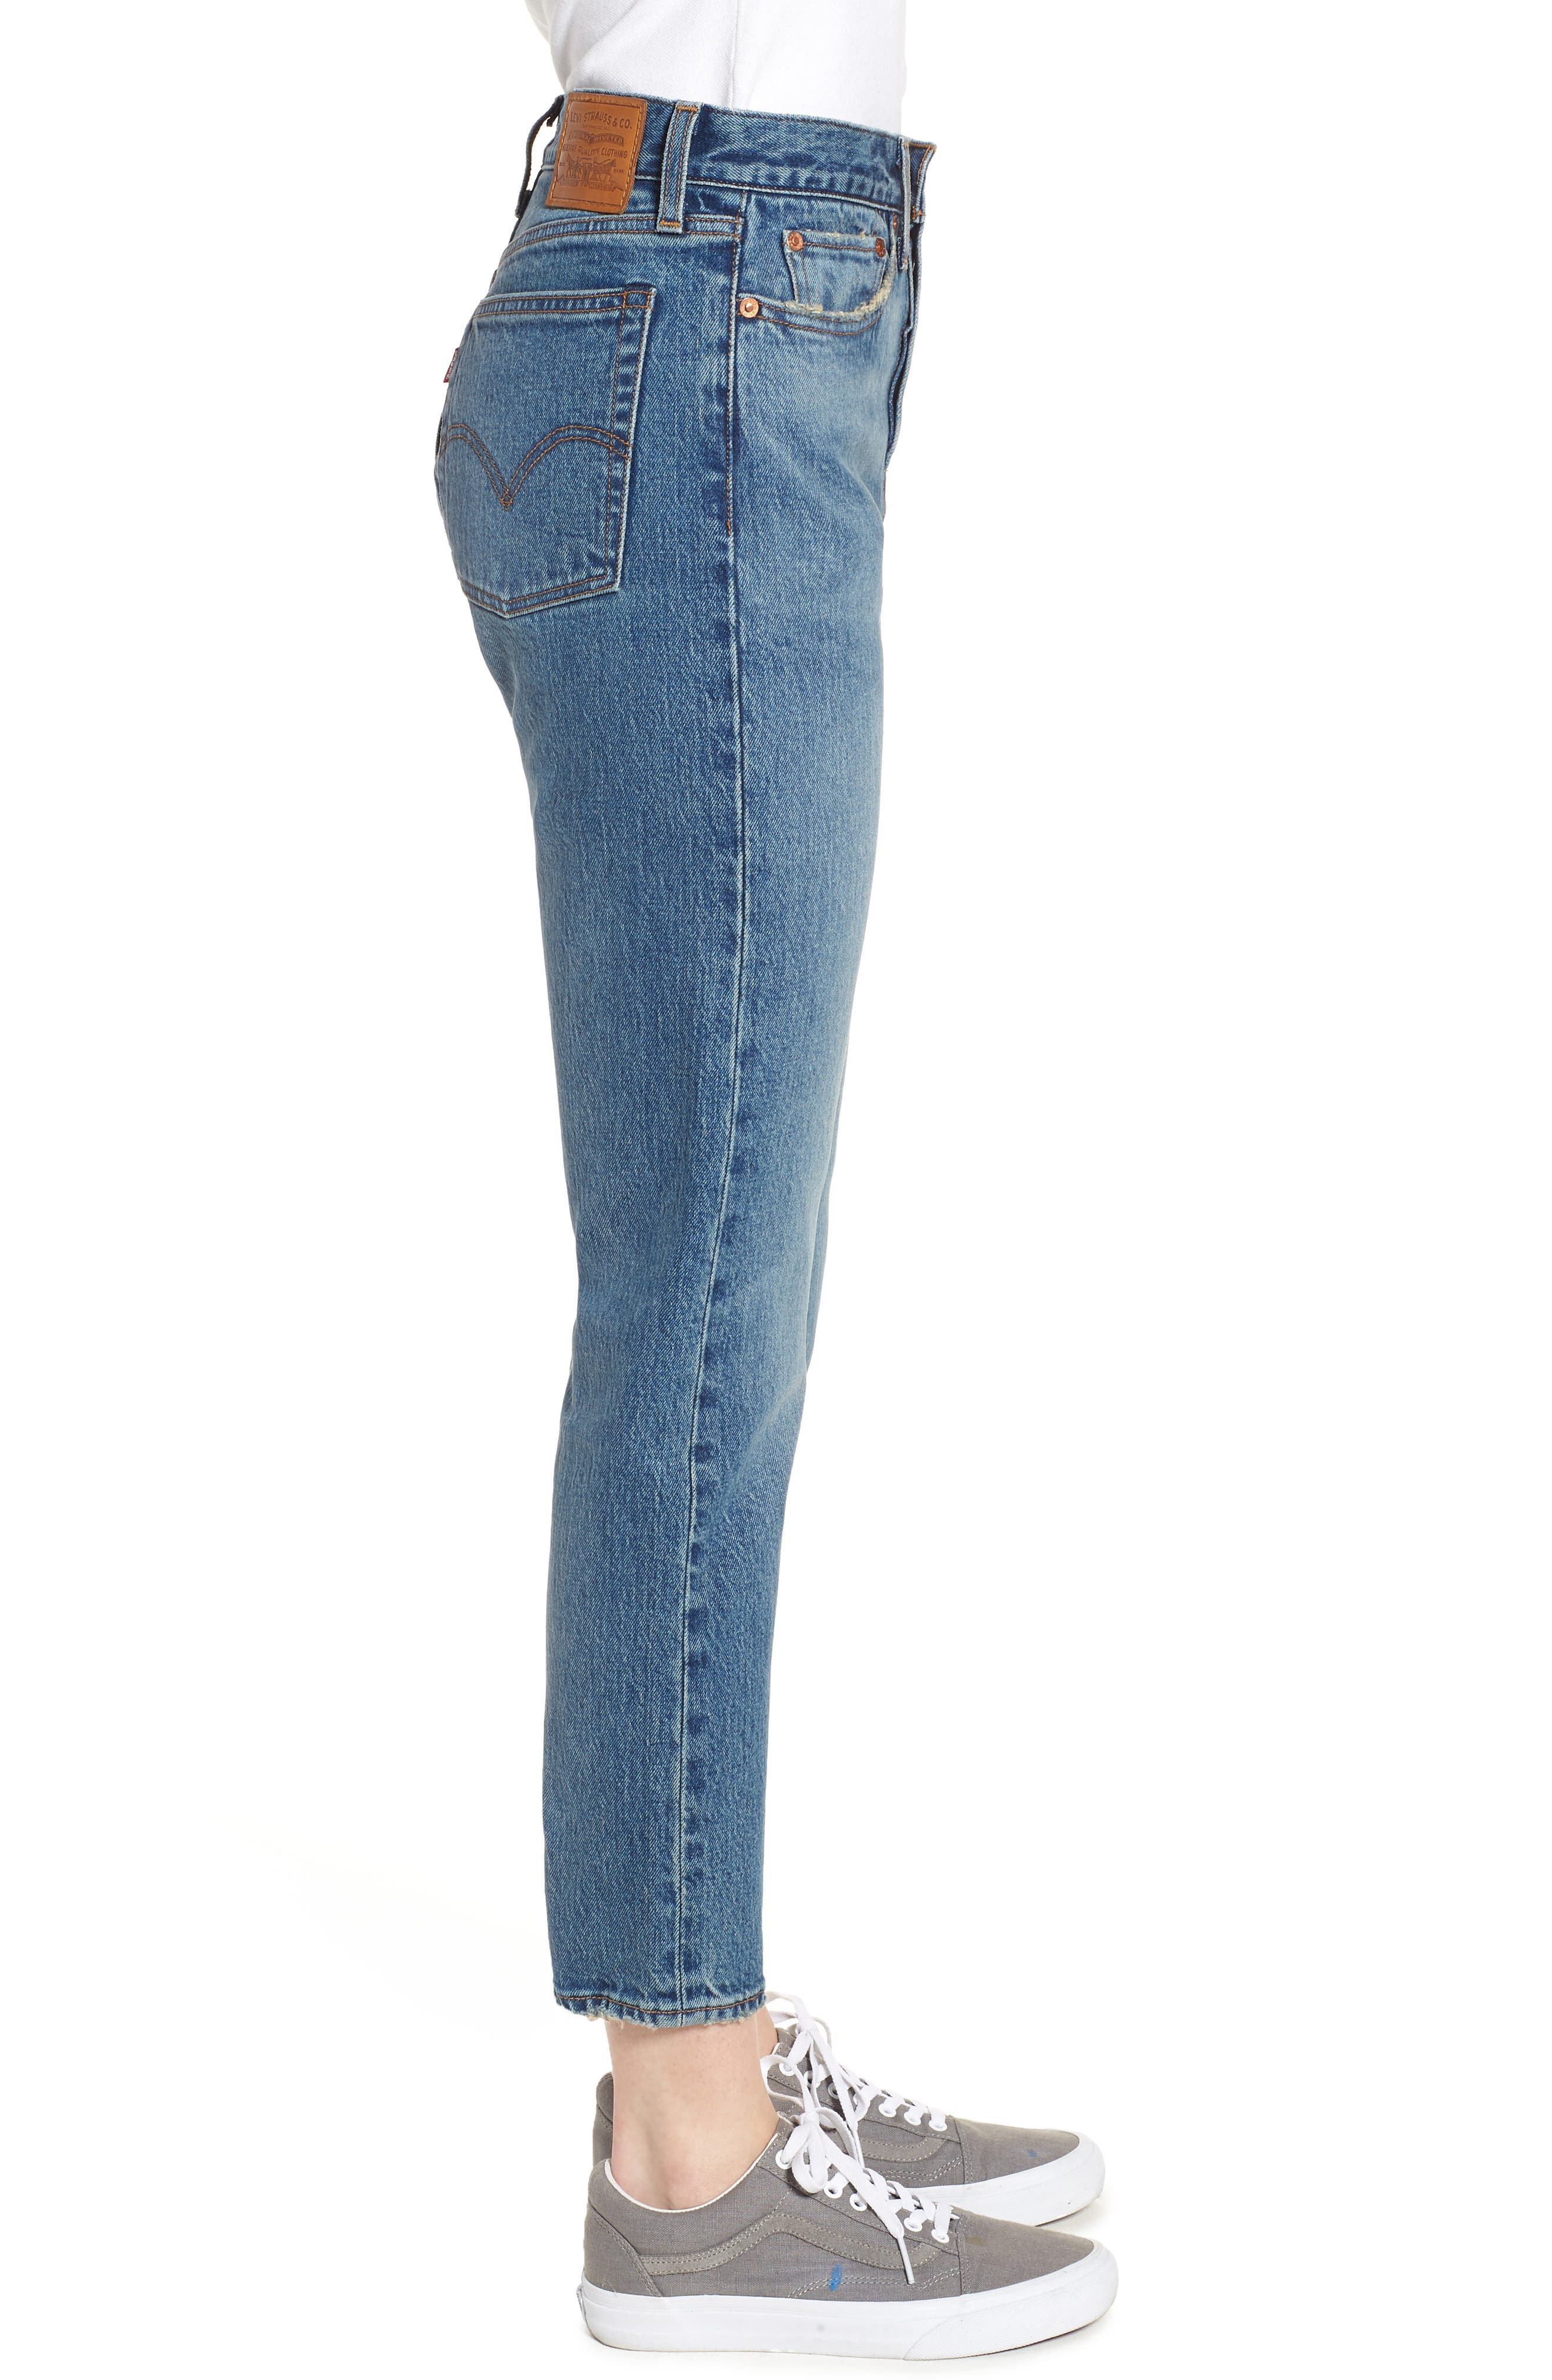 Wedgie Icon Fit High Waist Ankle Jeans,                             Alternate thumbnail 3, color,                             THESE DREAMS